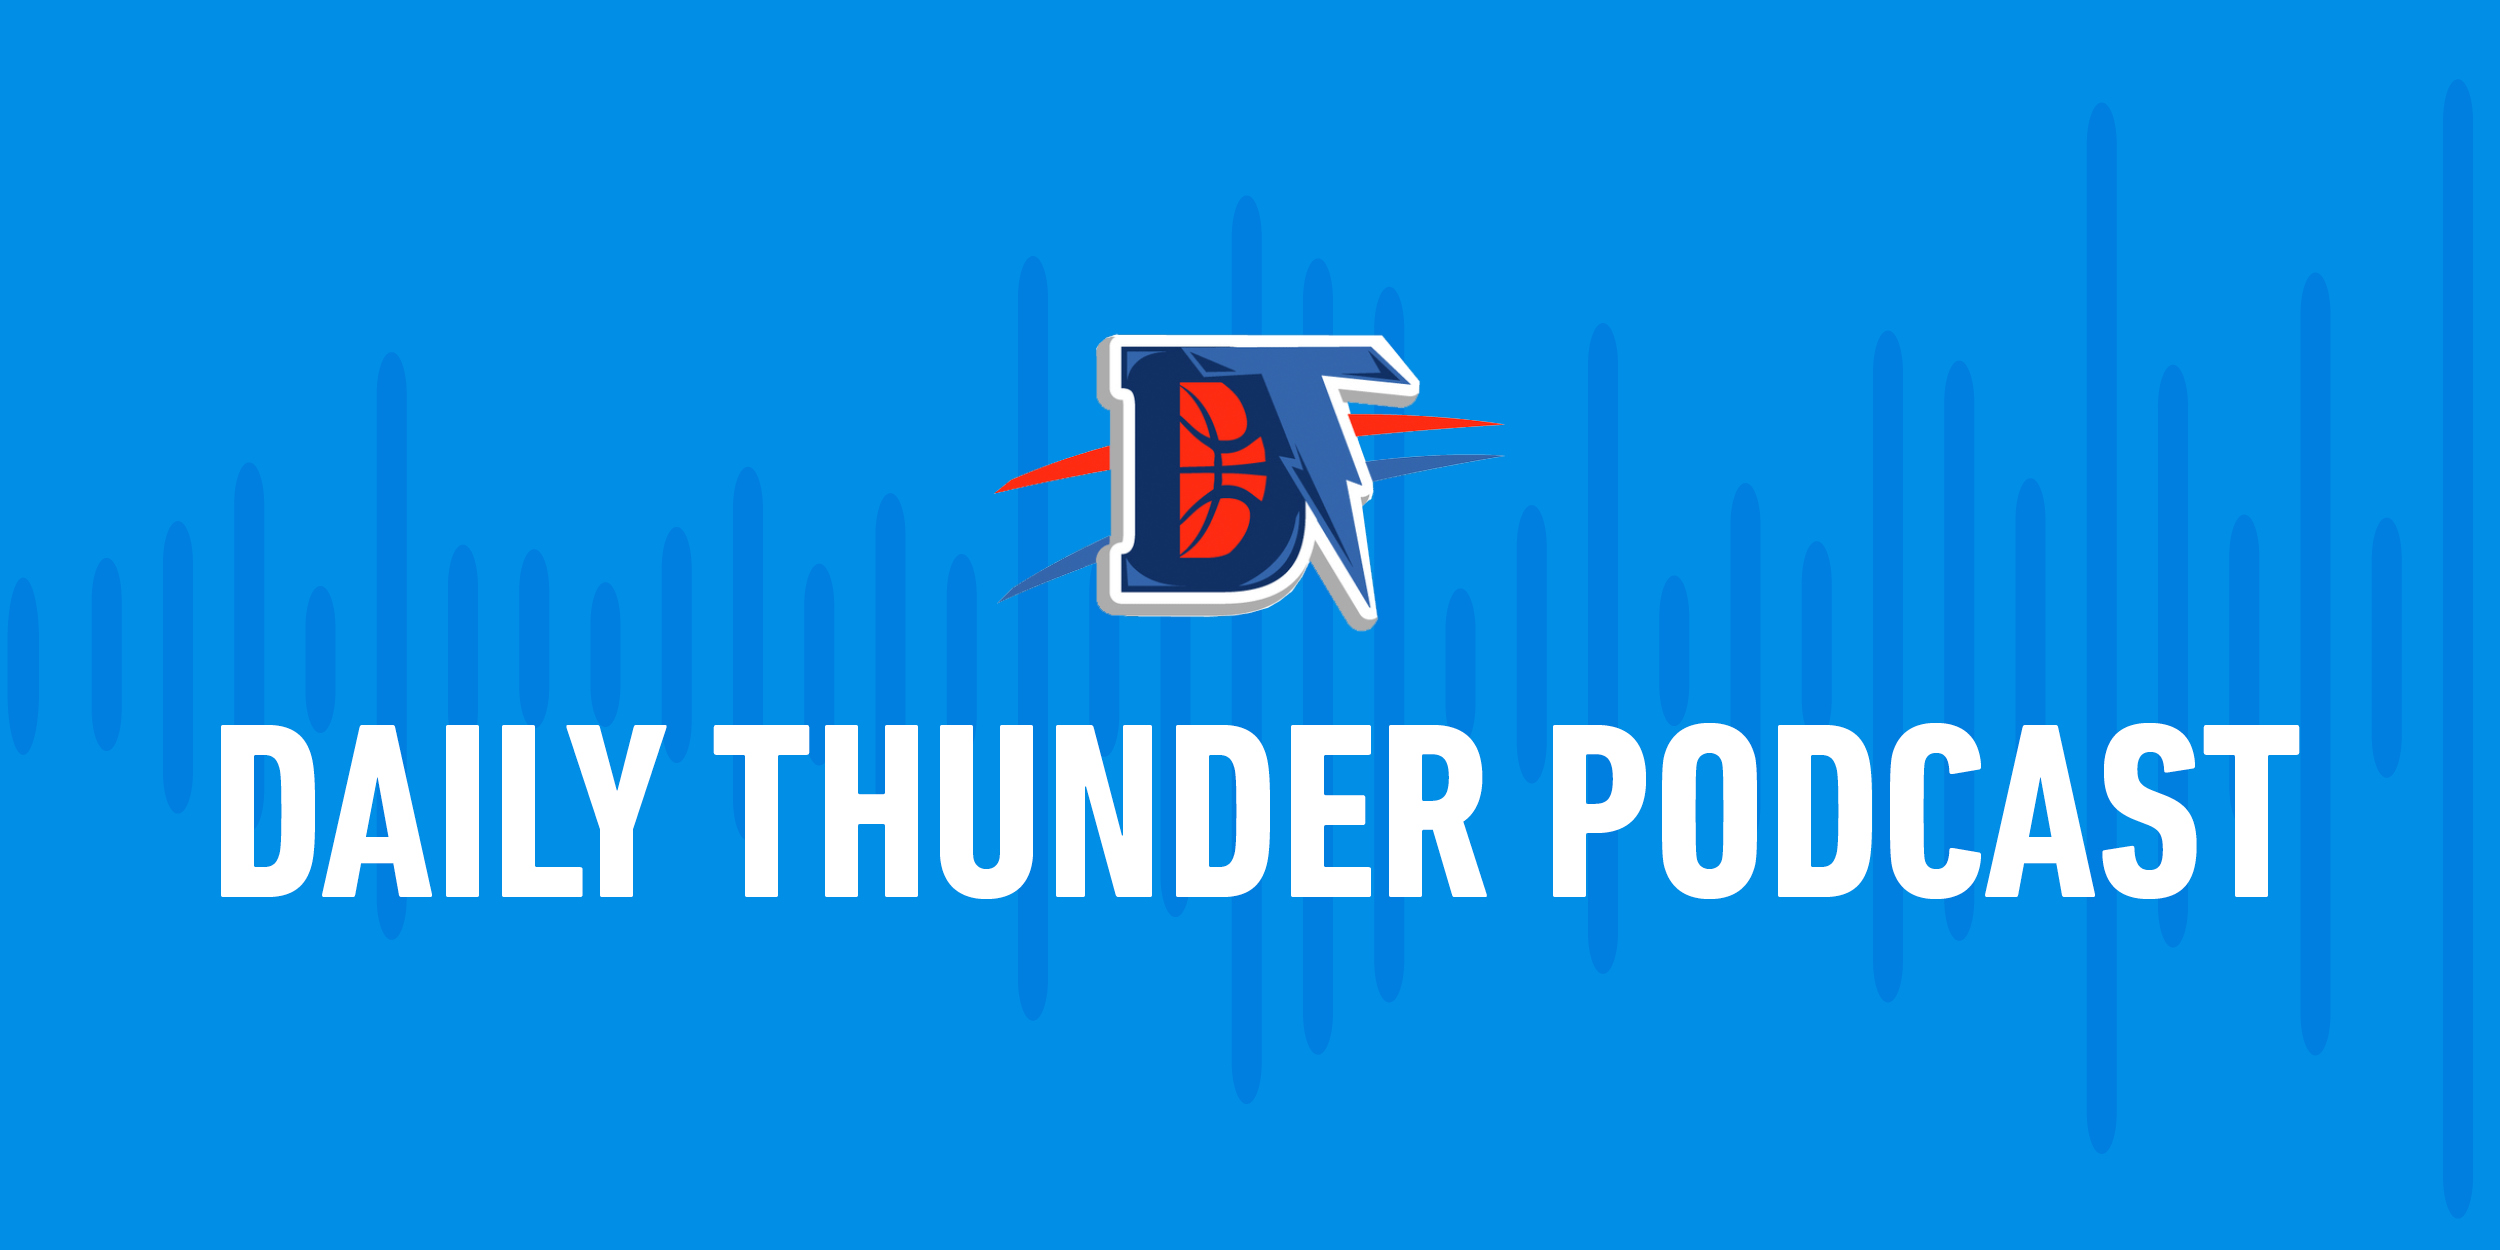 The Daily Thunder Podcast: Jon Hamm & the NBA's Return